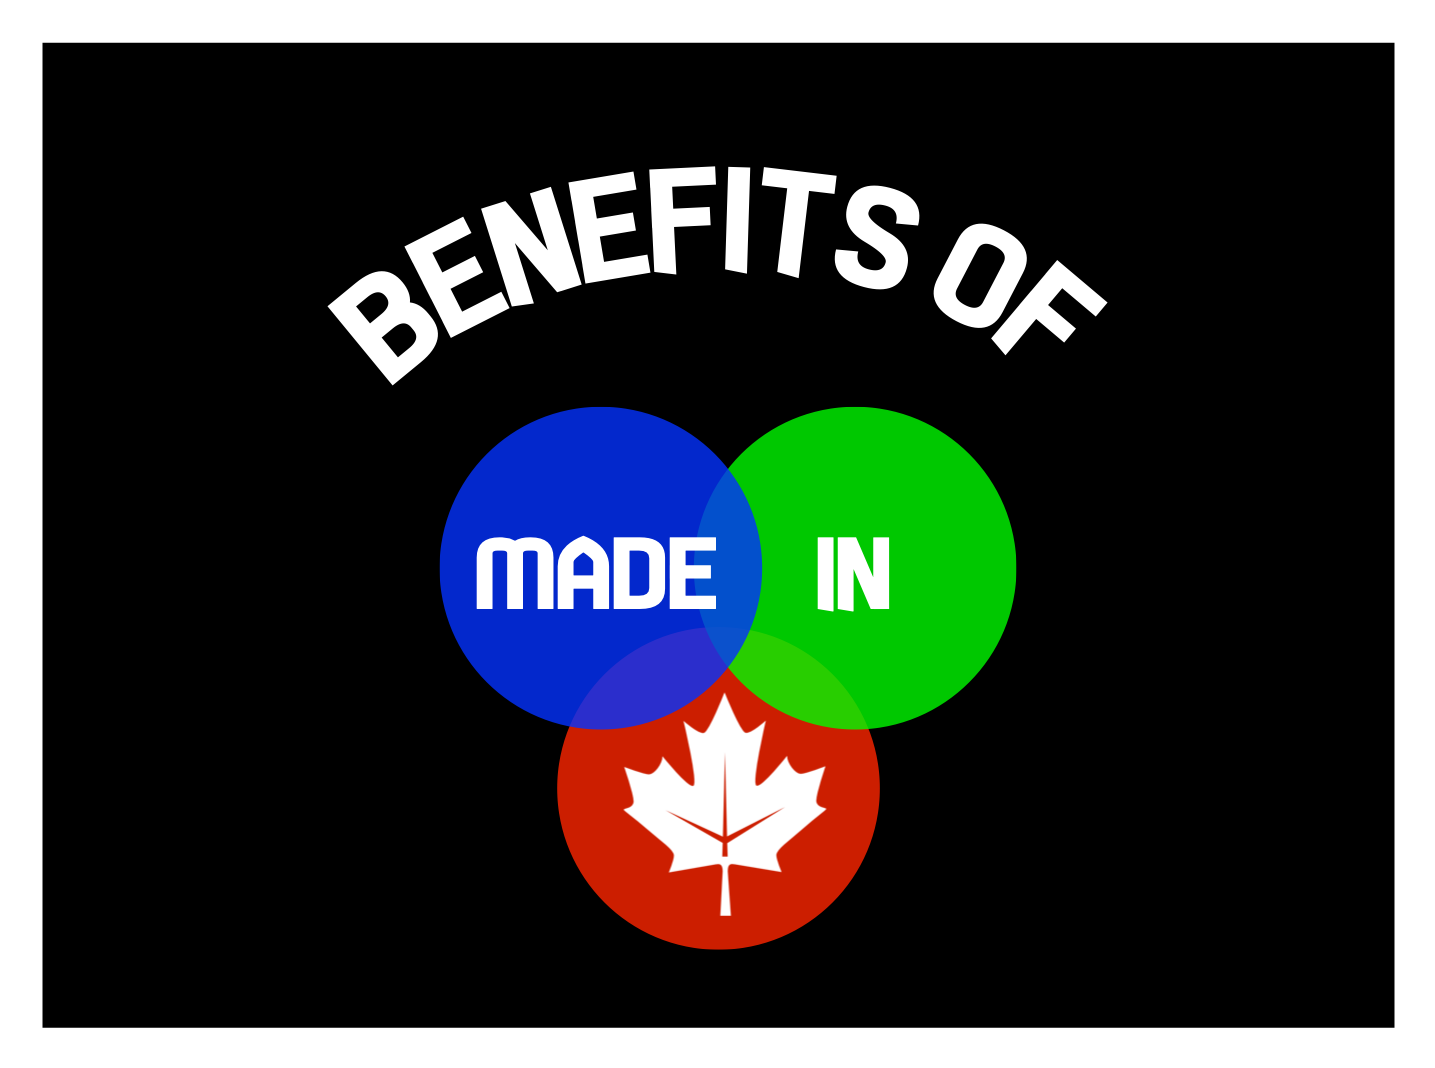 Benefits of Made in Canada